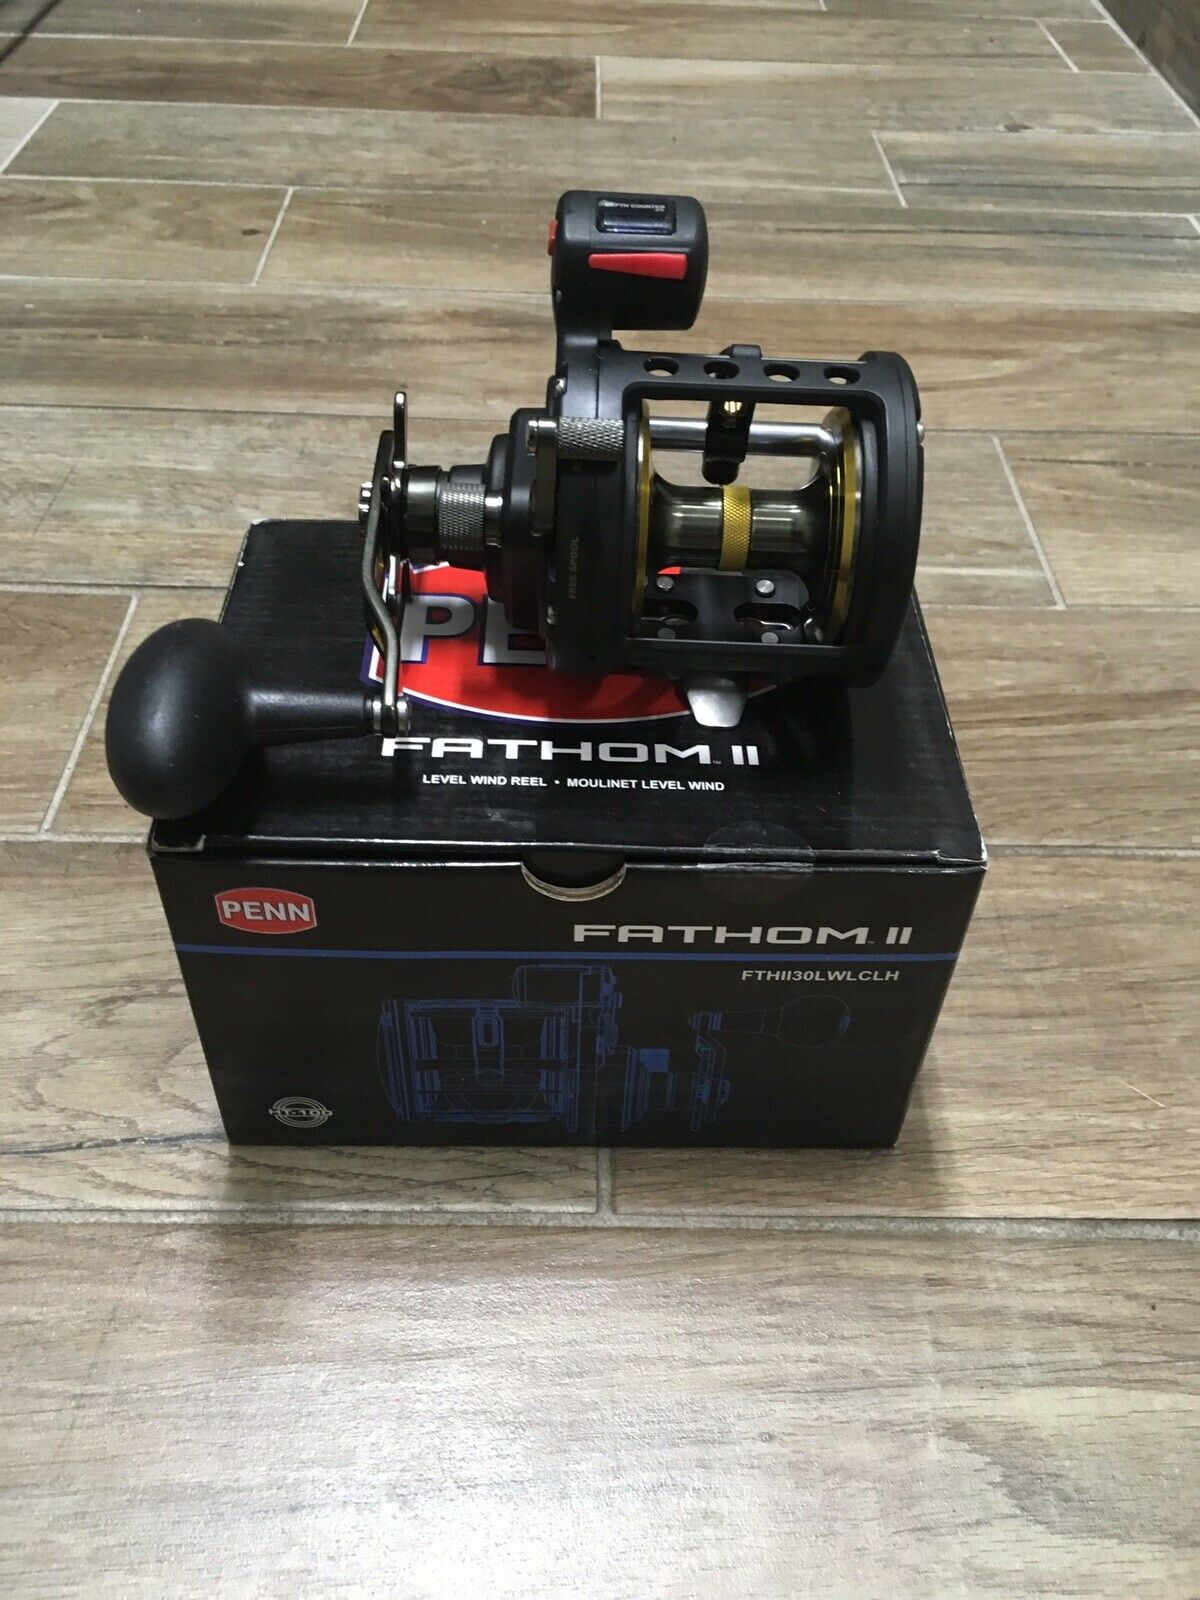 Penn  Fathom FTHll30LWLCLH 30 level wind line counter left hand conventional reel  selling well all over the world